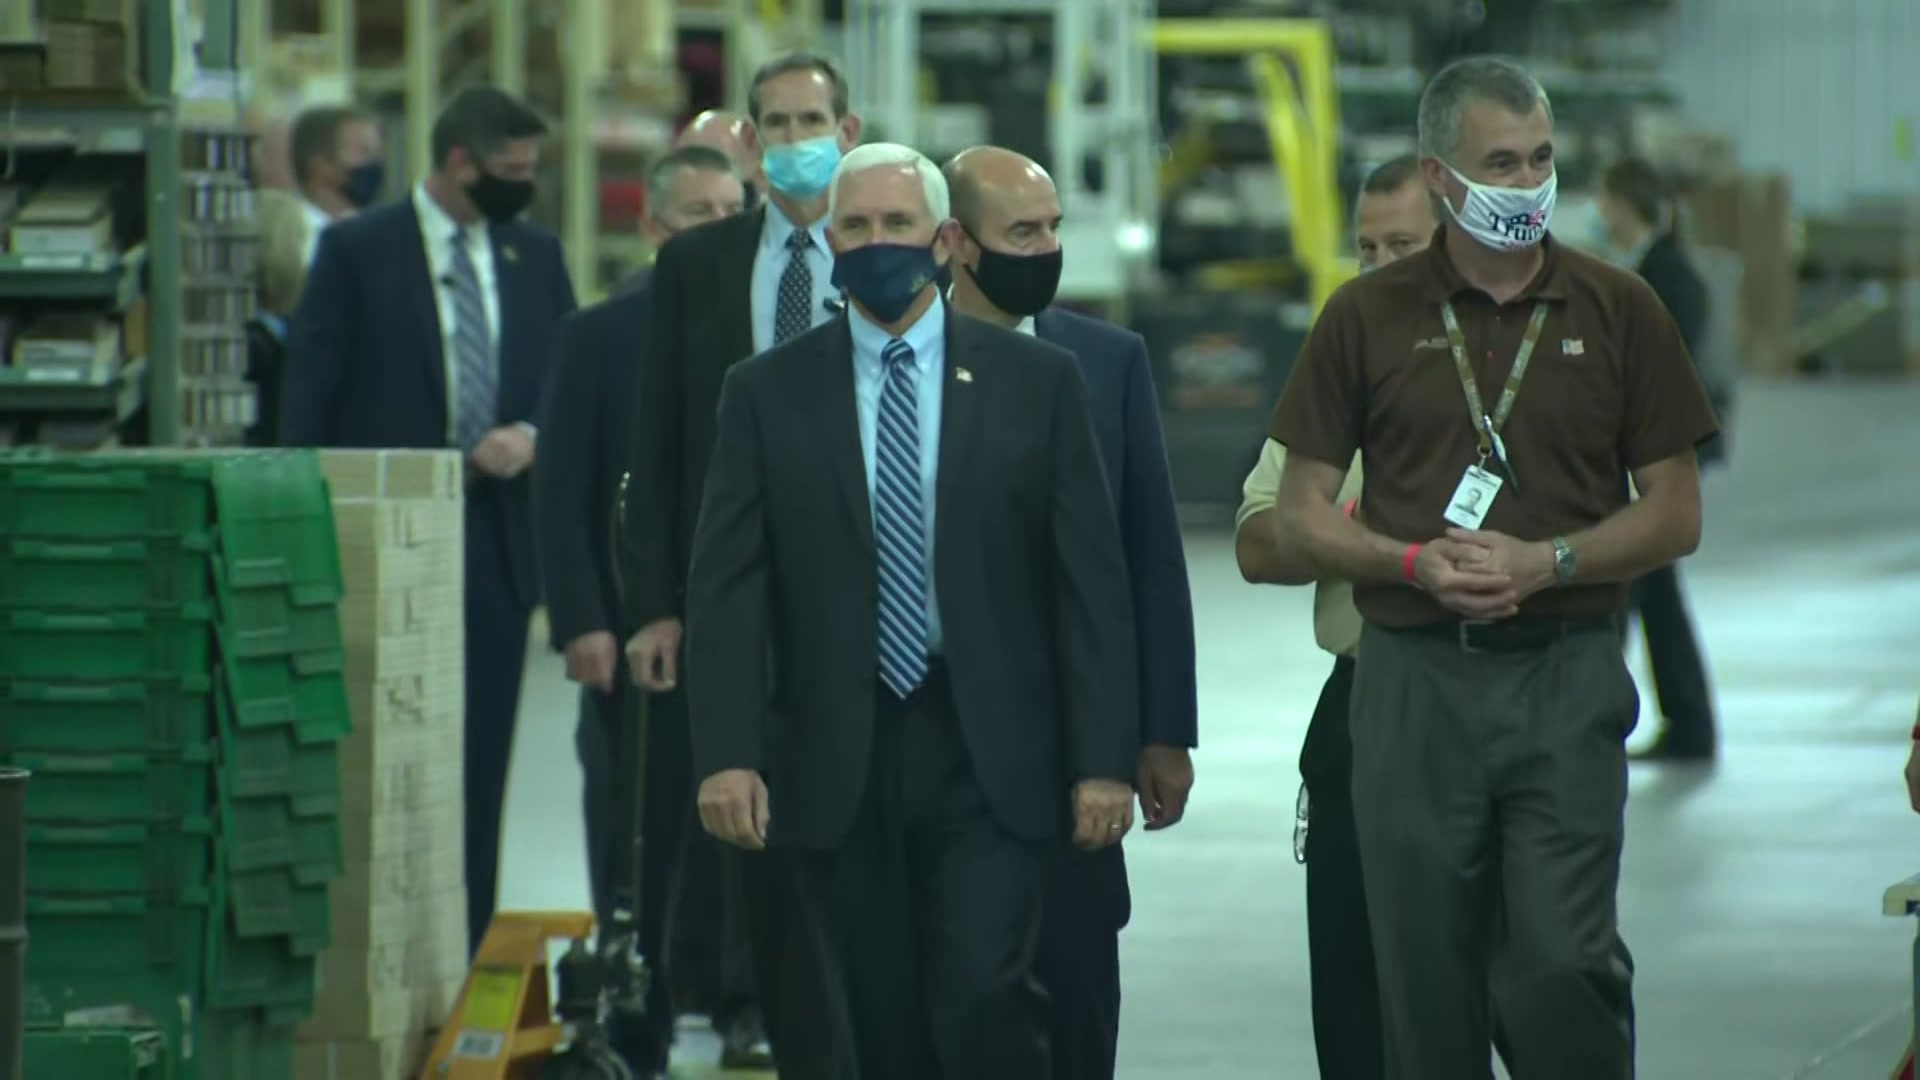 Vice President Mike Pence campaigns in Eau Claire, visits Midwest Manufacturing